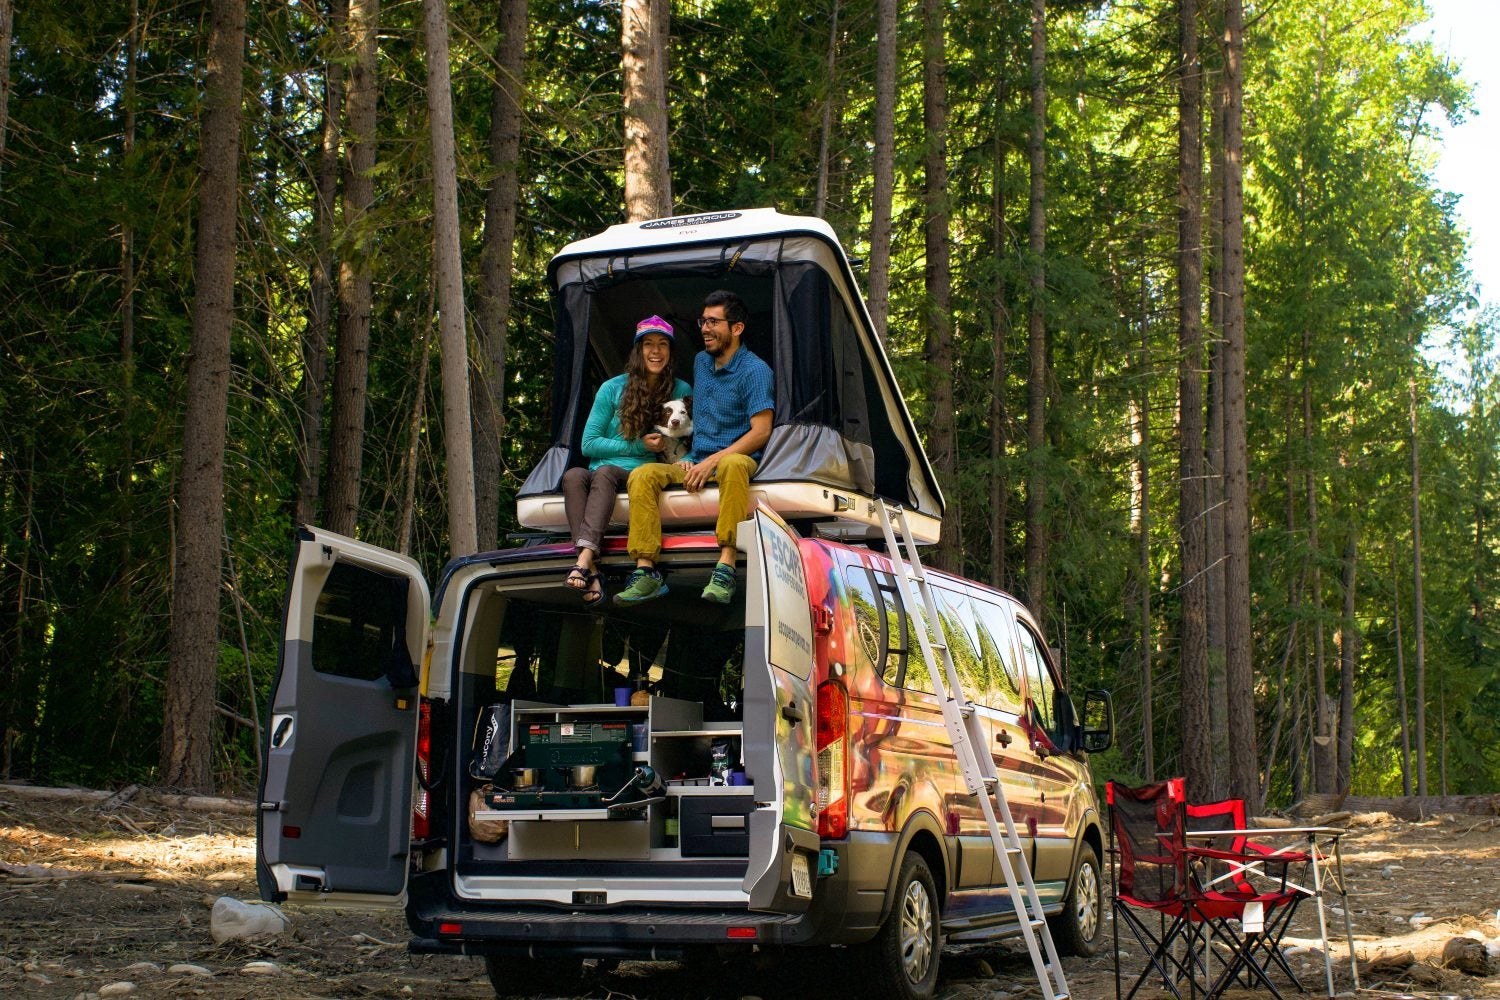 vanlife ready thanks to escape campervans